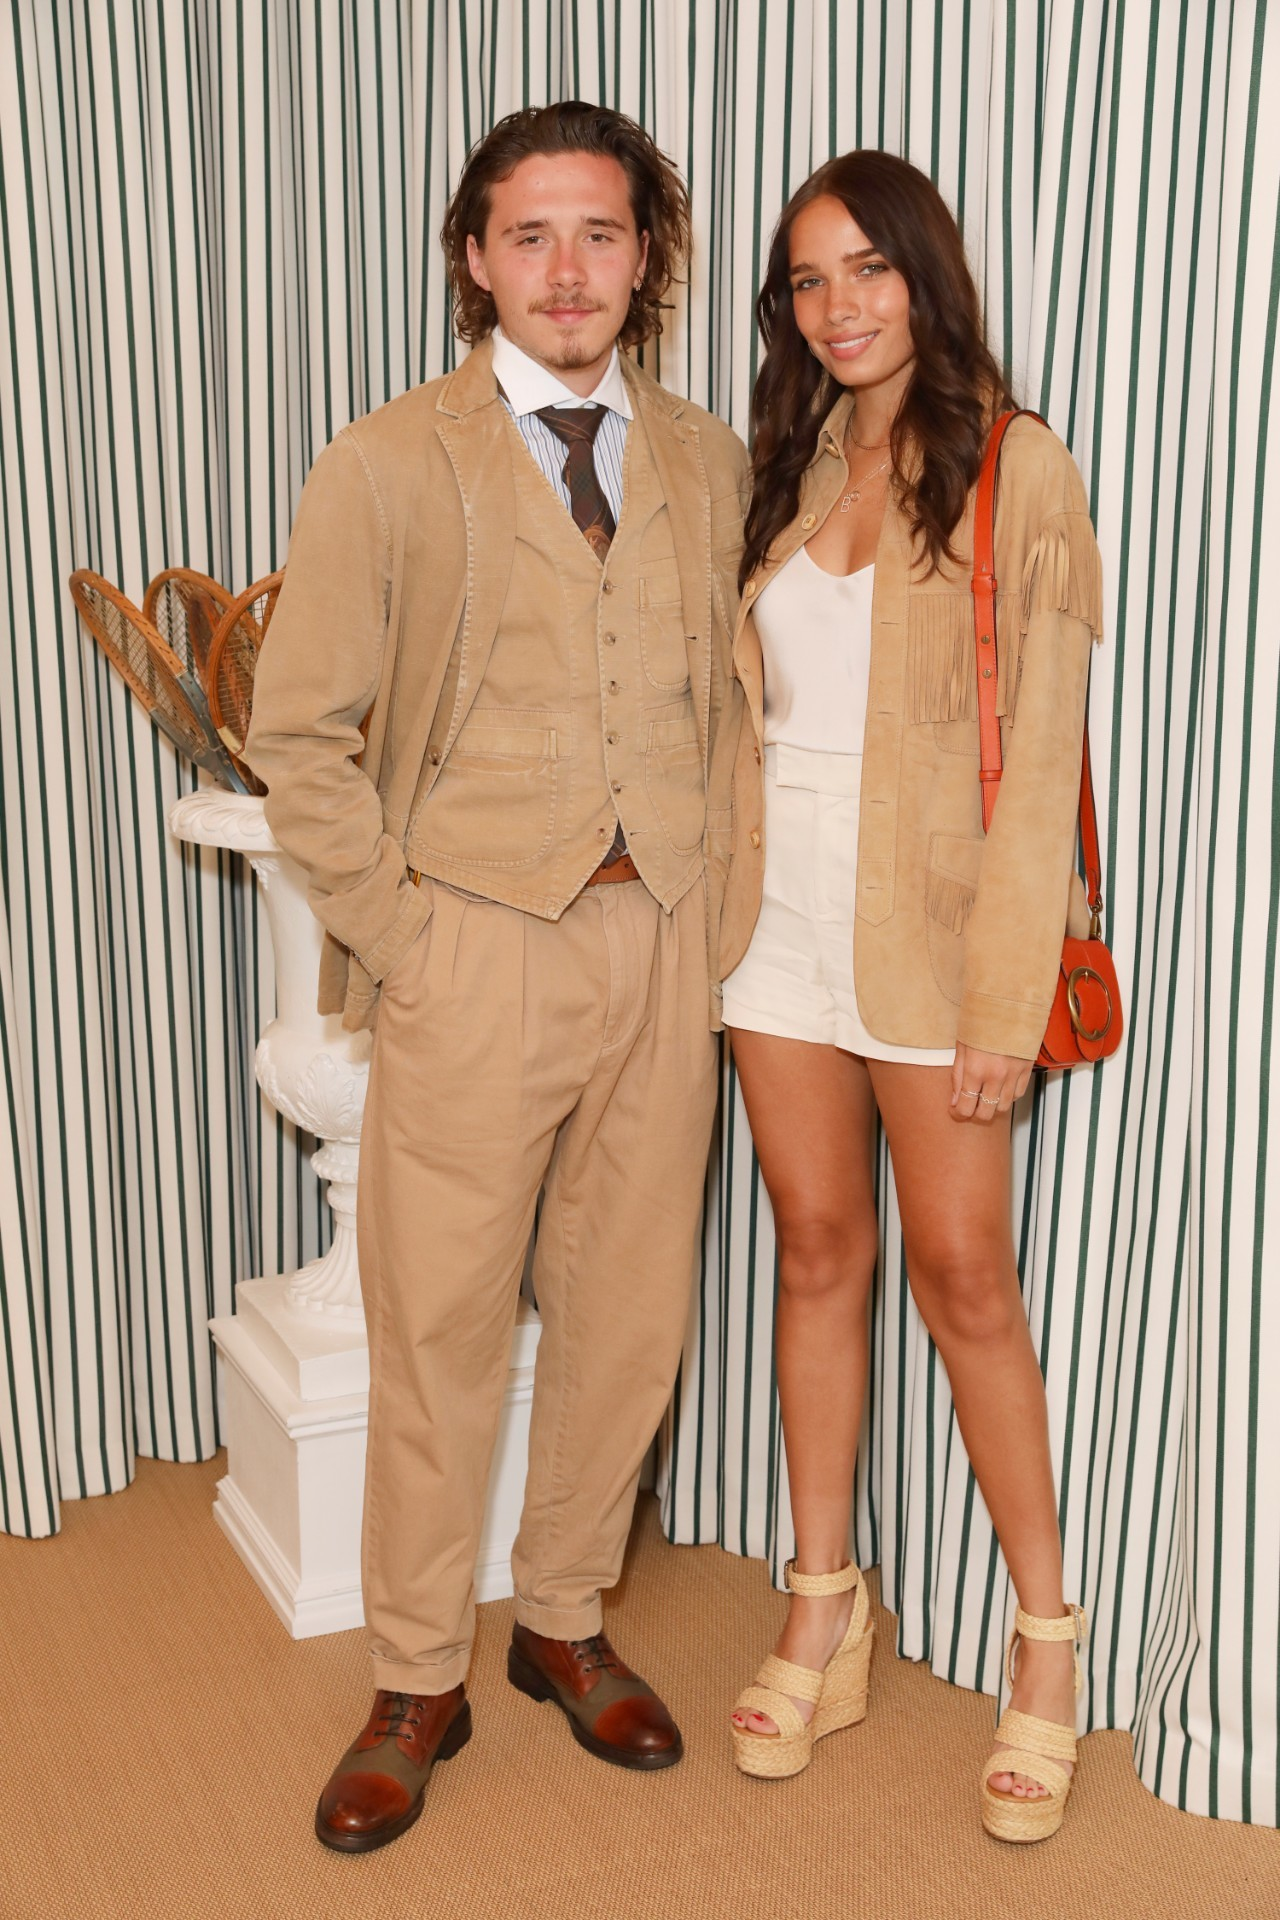 Brooklyn Beckham and Hana Cross stop by the Polo Ralph Lauren suite during the Wimbledon Tennis Championships at All England Lawn Tennis and Croquet Club in London on July 14, 2019.